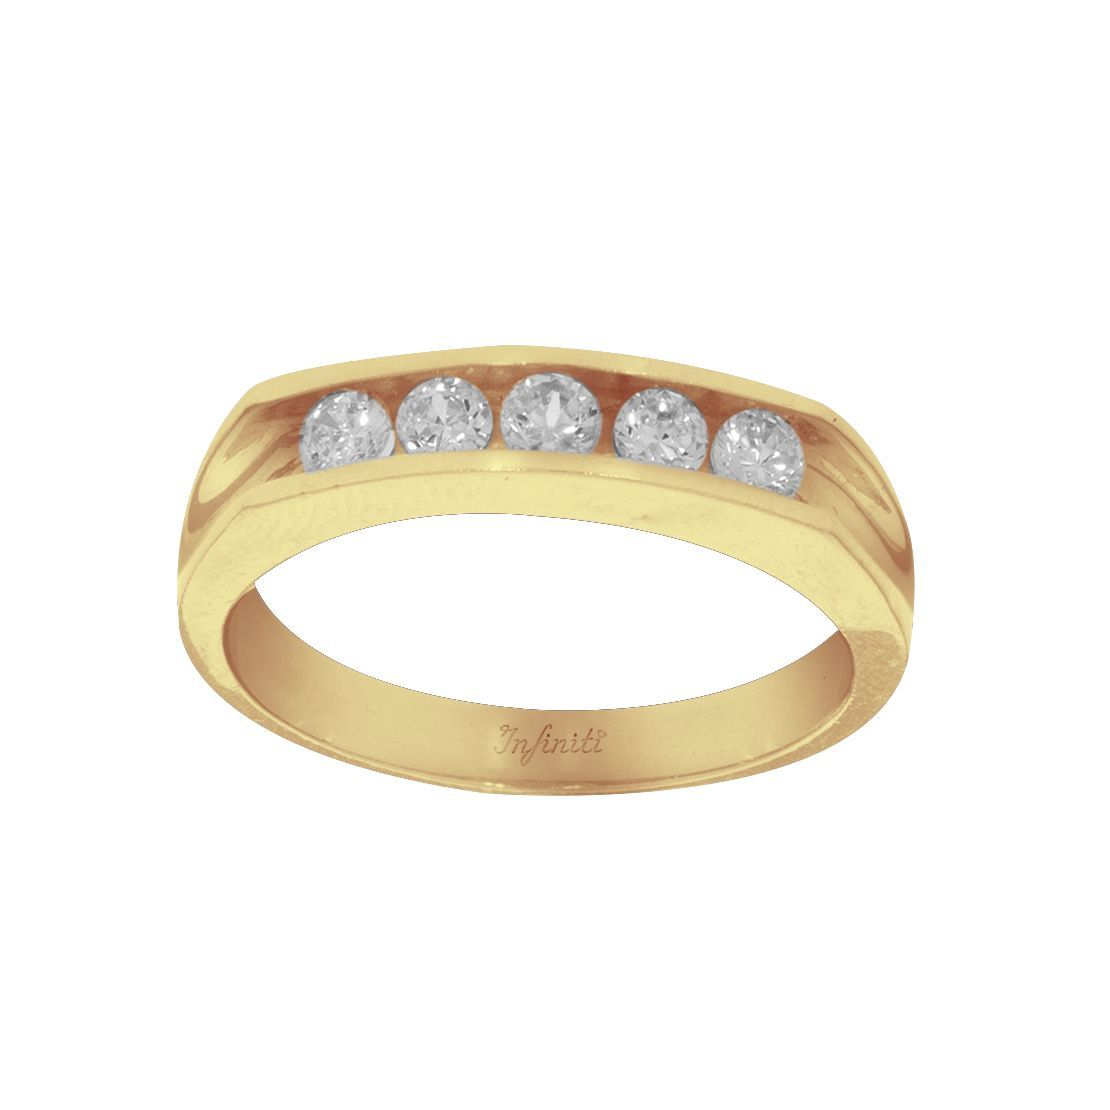 Churumbela Oro 14k, con Zirconias 3 mm